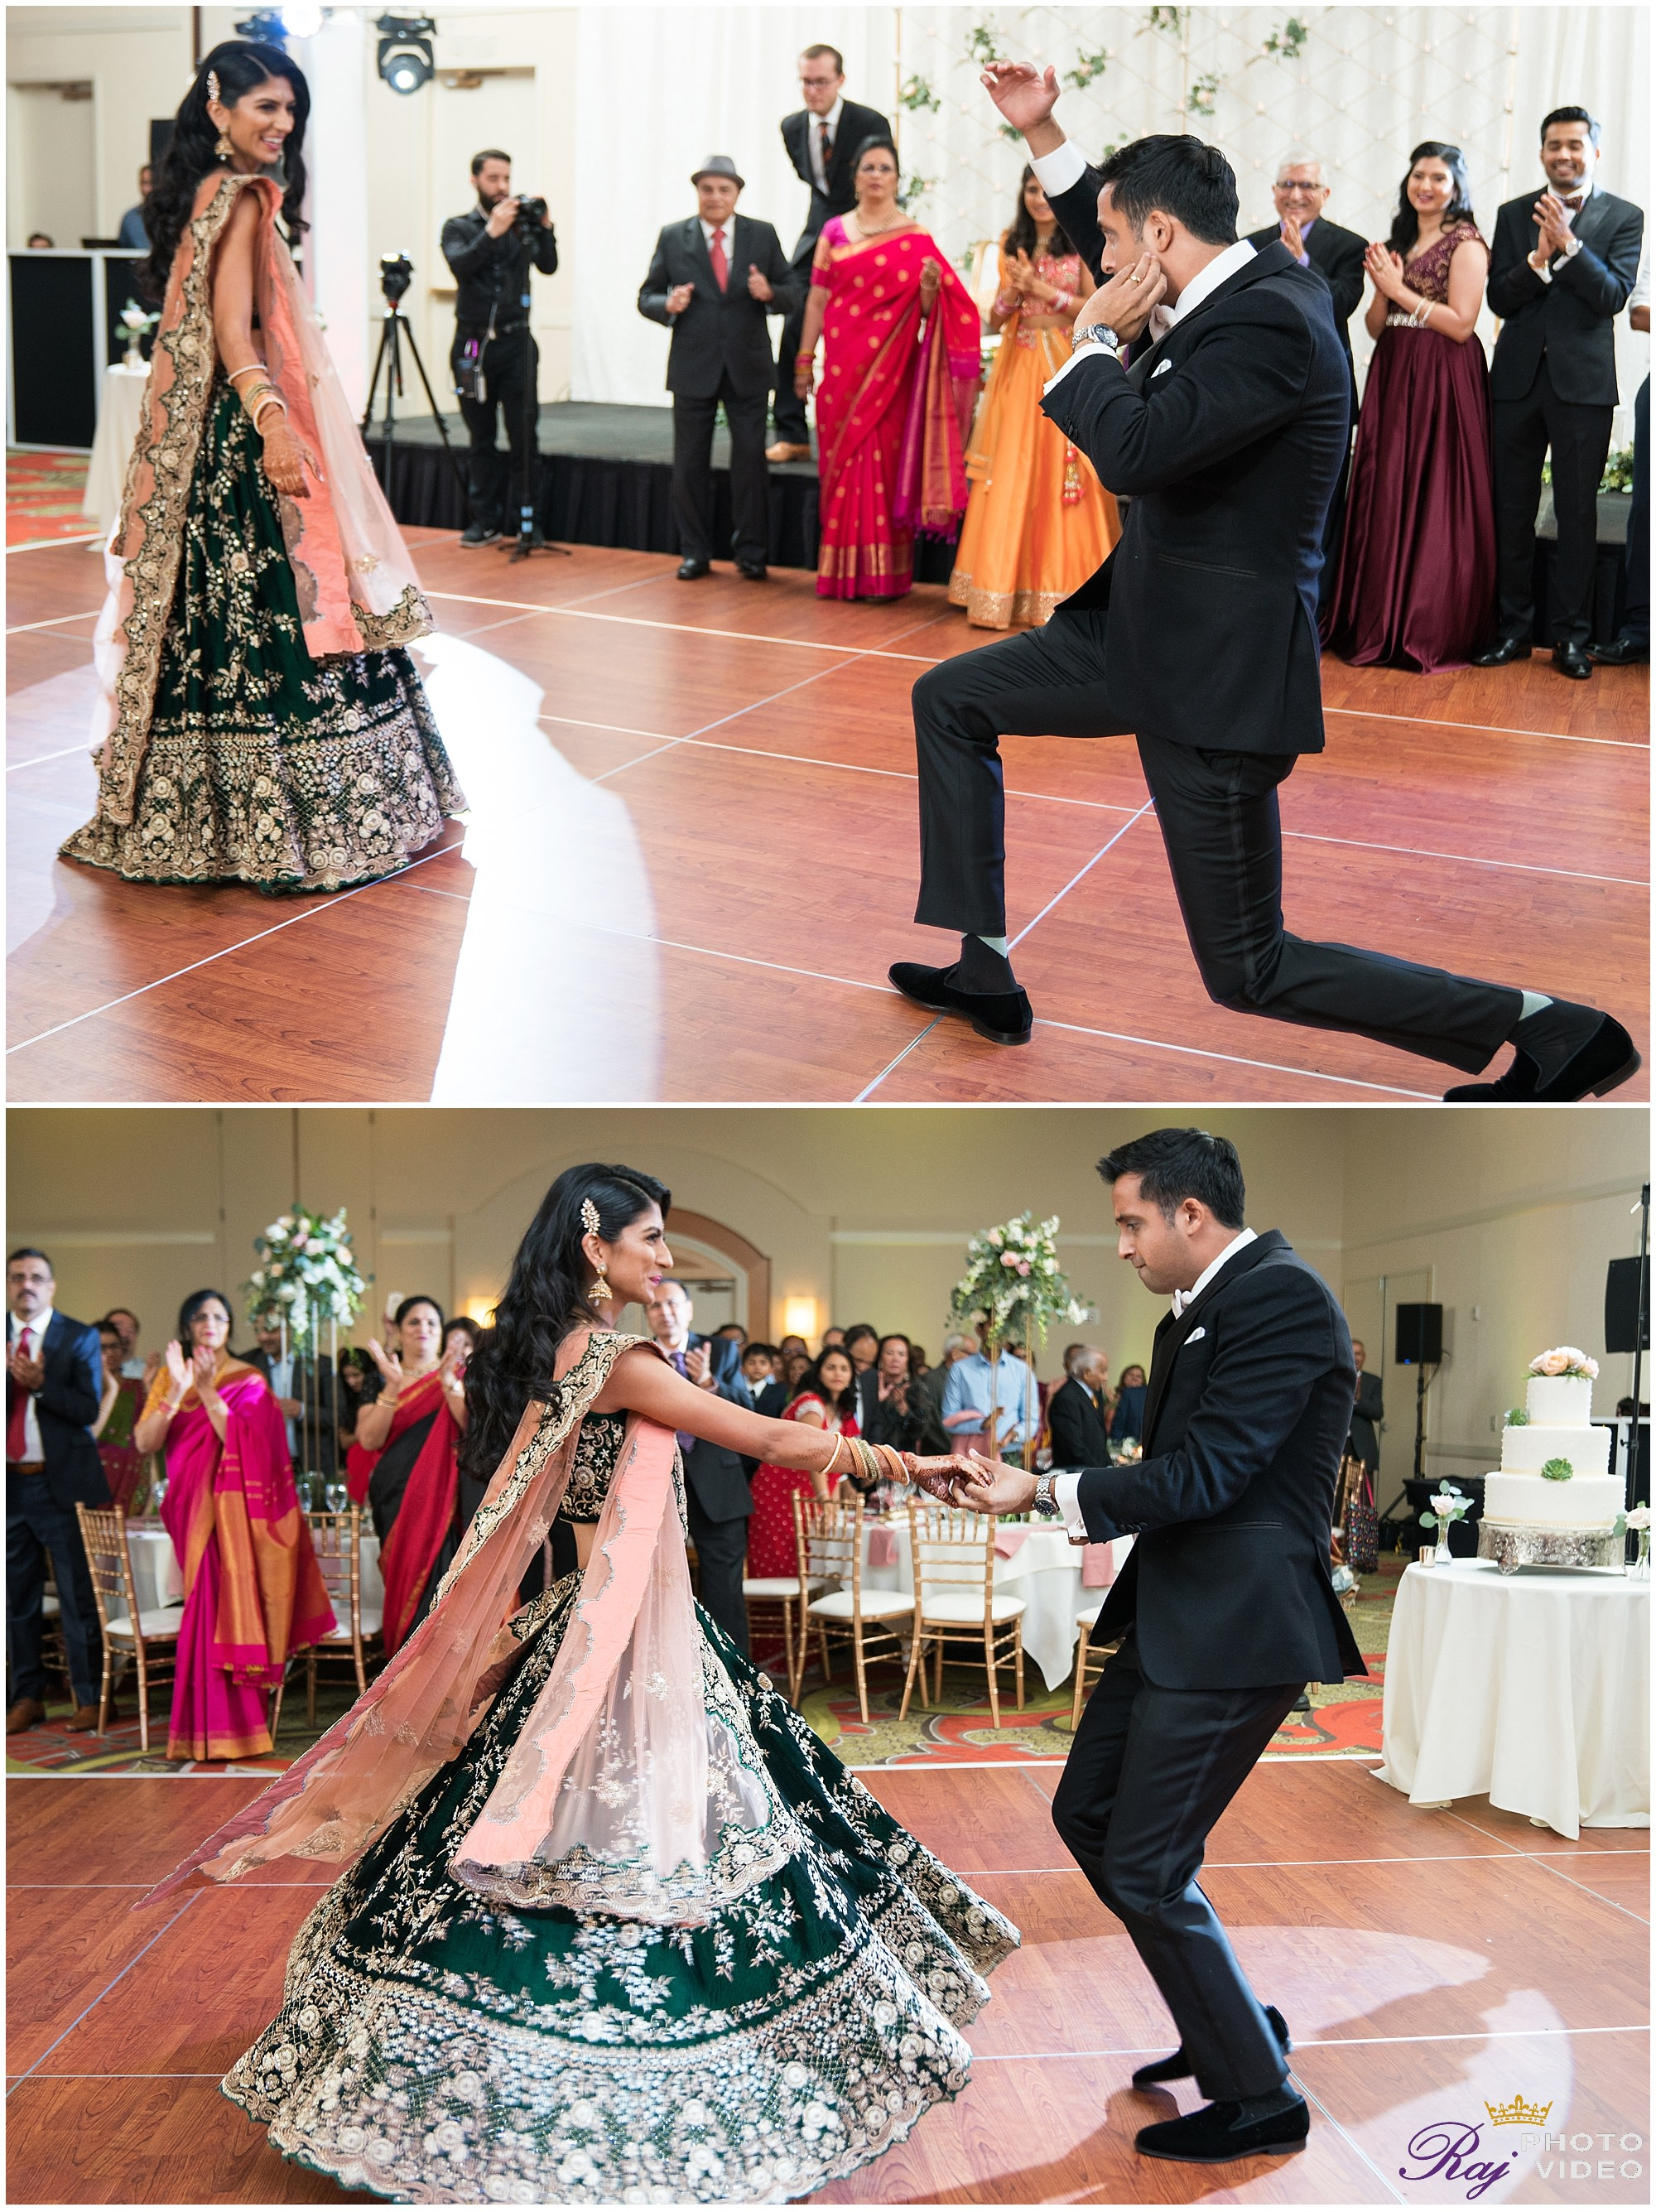 Scottsdale_Marriott_at_McDowell_Mountains_Arizona_Indian_Wedding_Sapna_Shyam-82.jpg